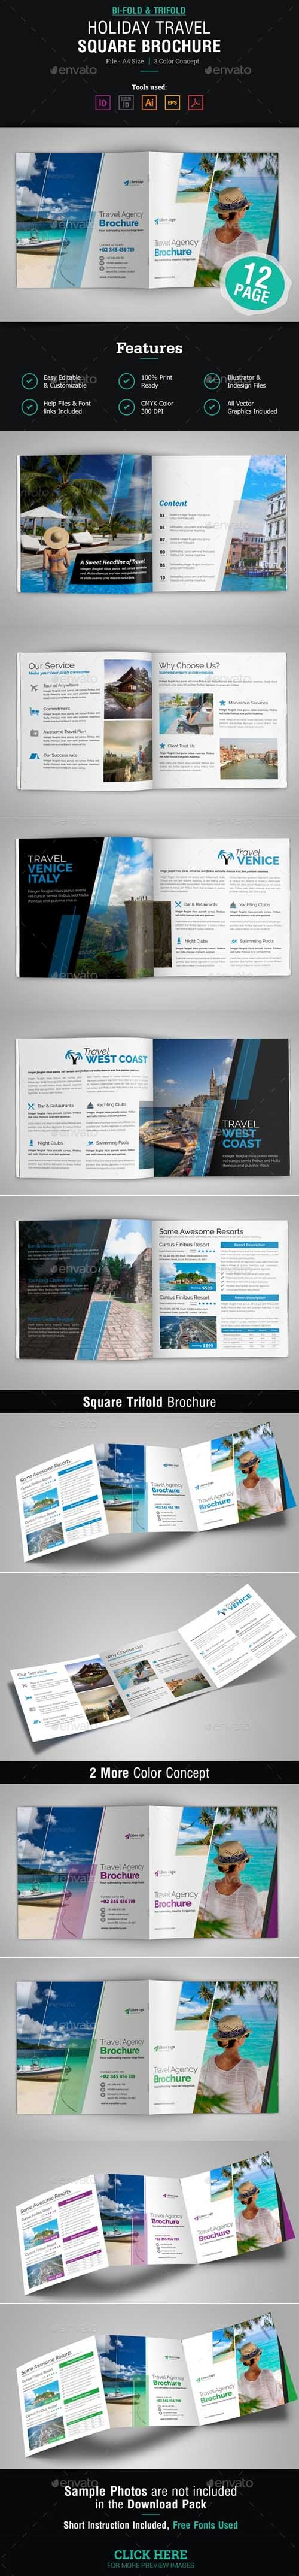 Graphicriver - Holiday Travel Square Bifold & Trifold Brochure 20178949